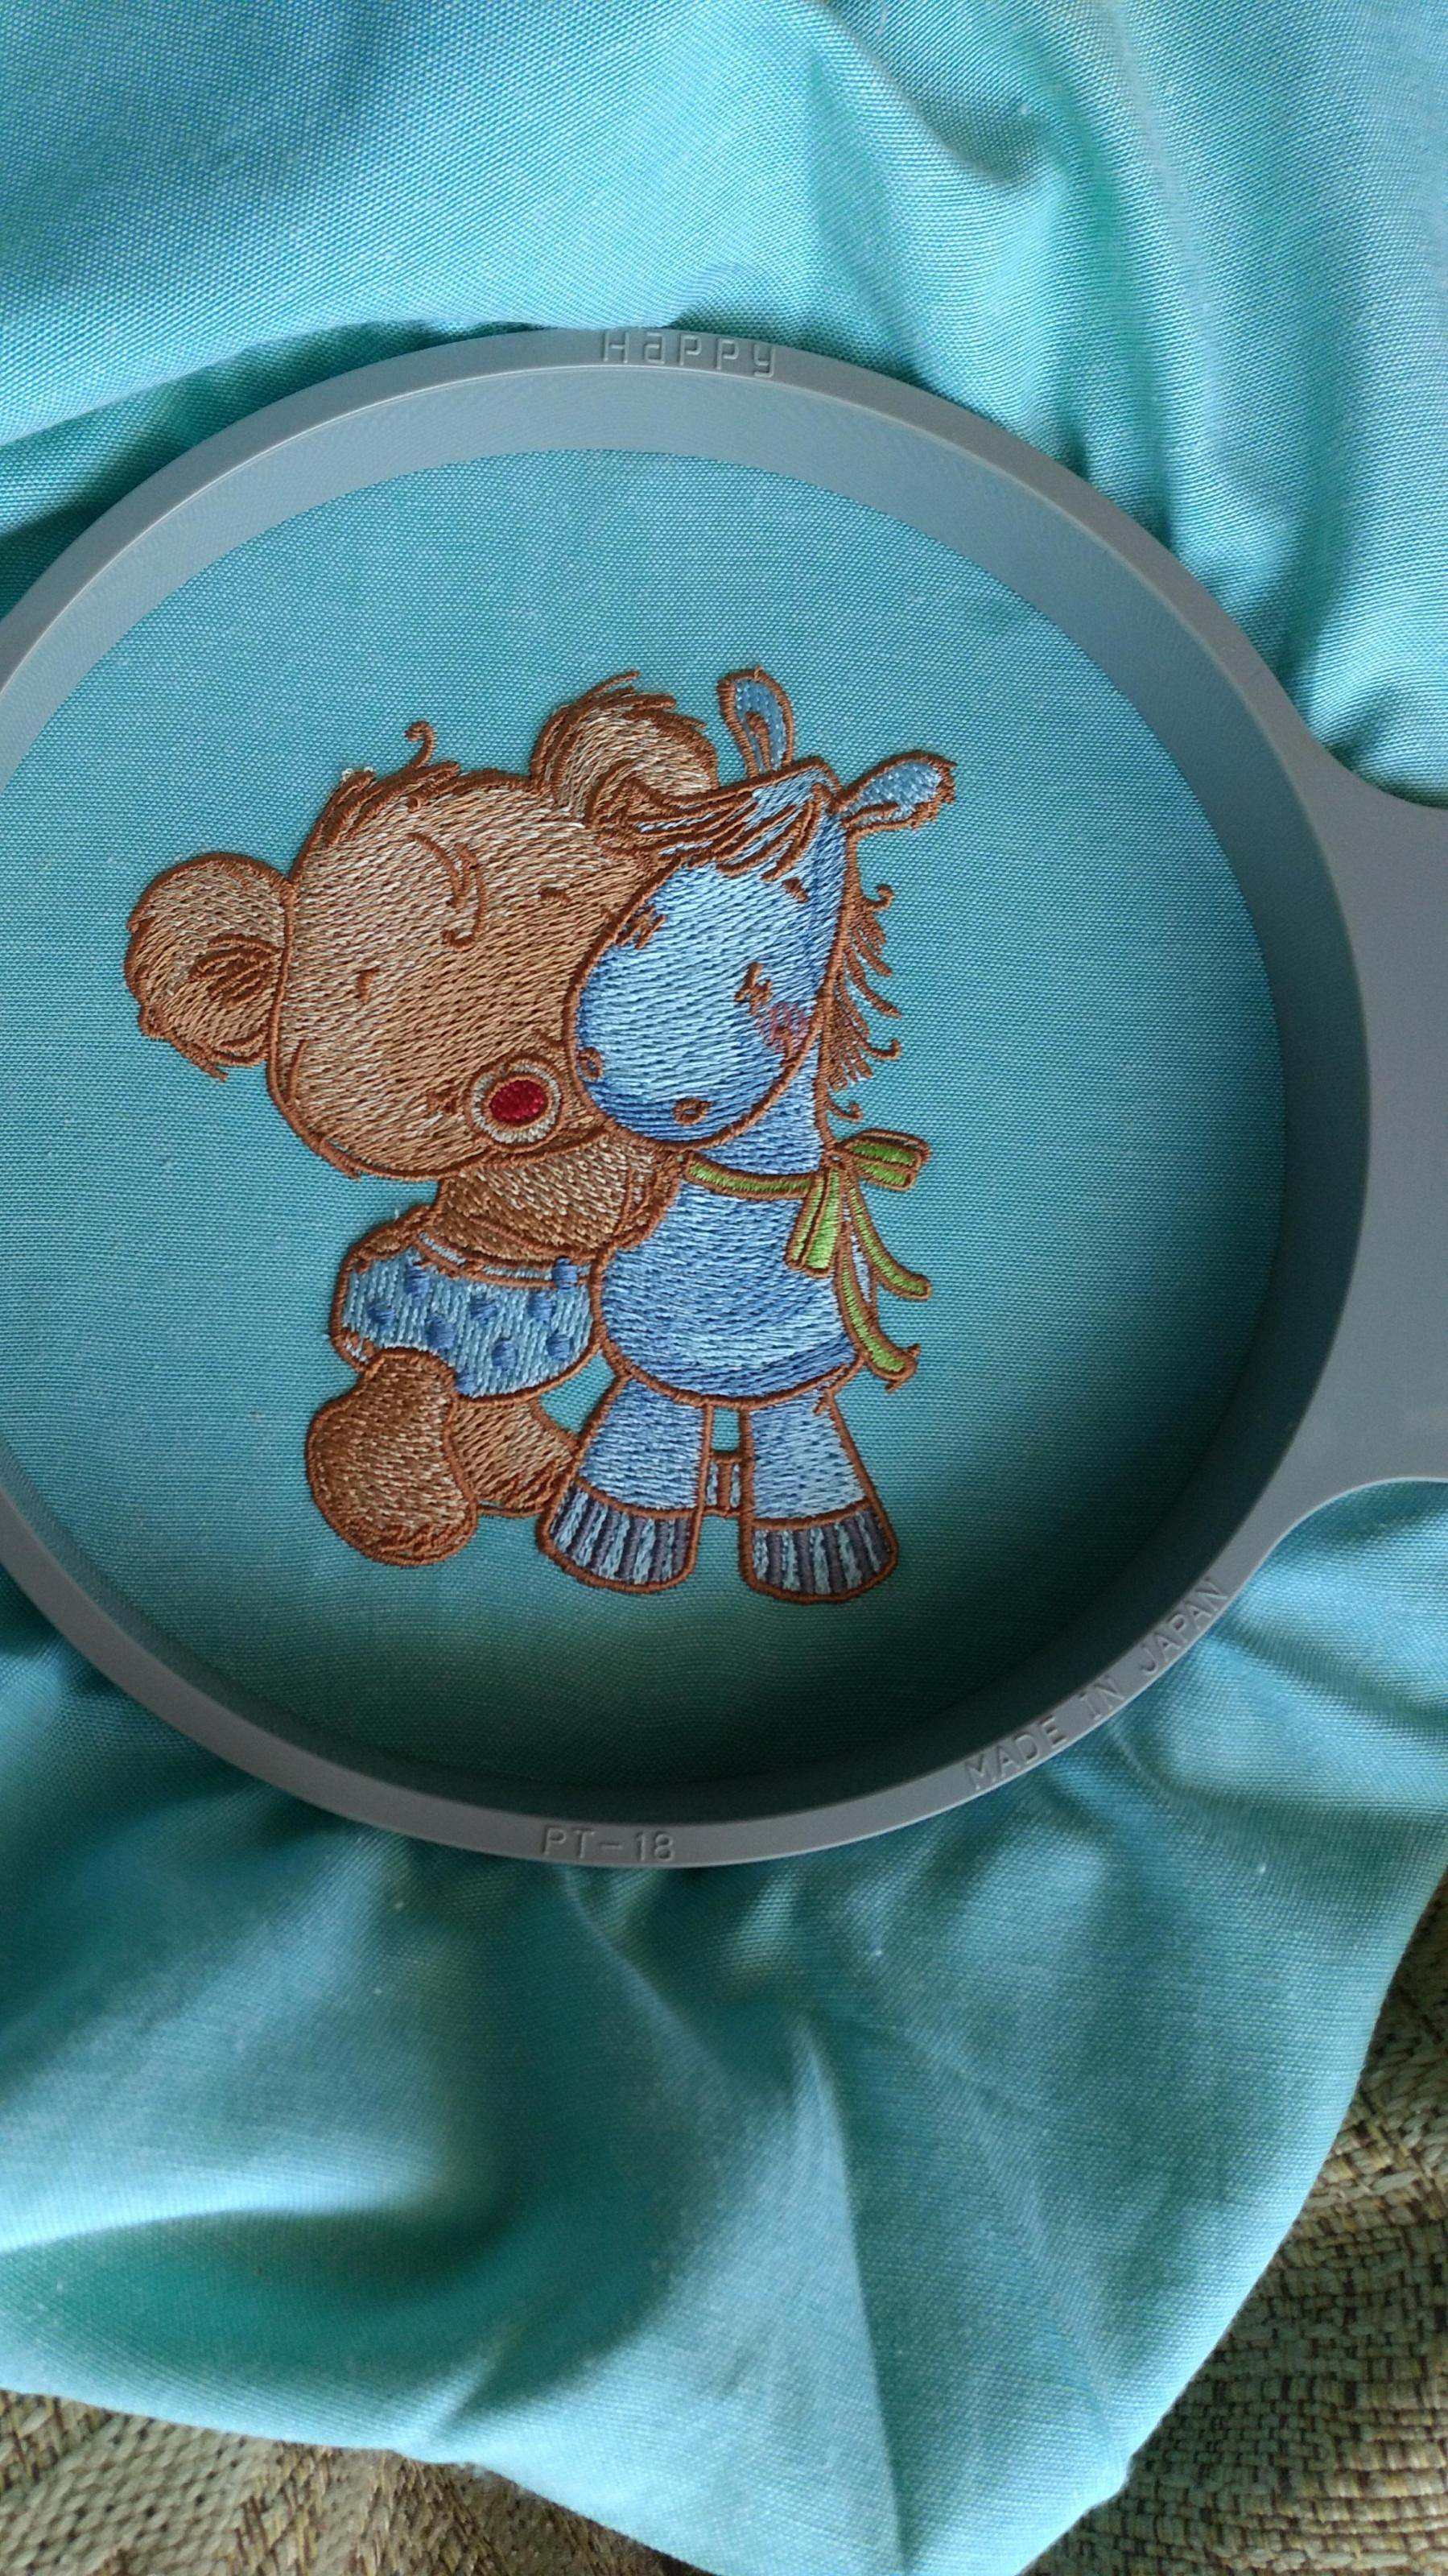 Finished teddy and pony embroidered design in round hoop